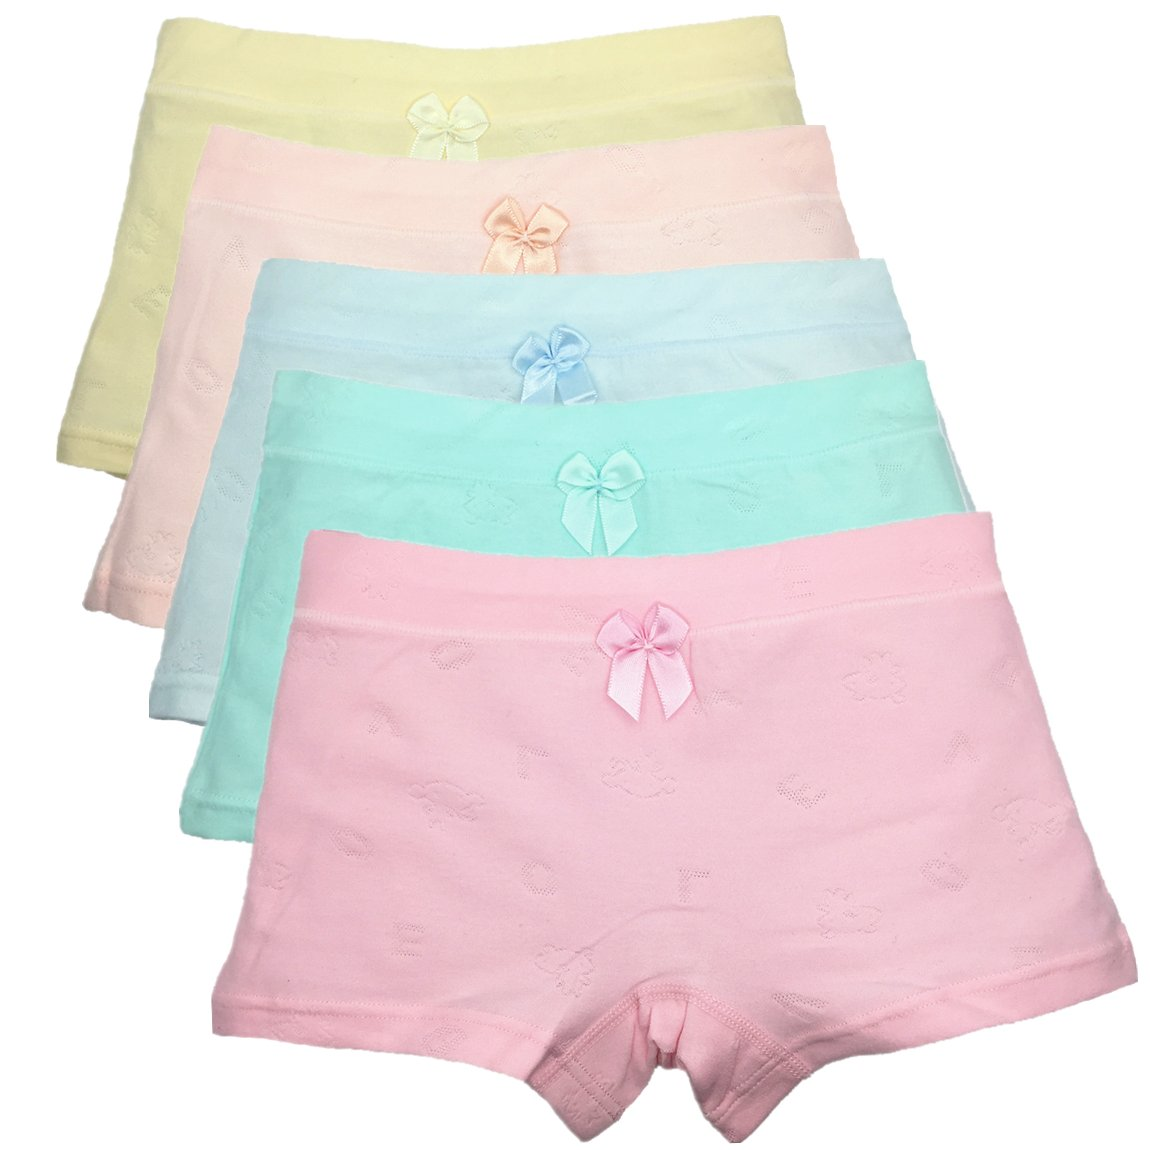 Girls' Boyshort Toddler Briefs Cotton Underwear 5pk Panties CzBonjour